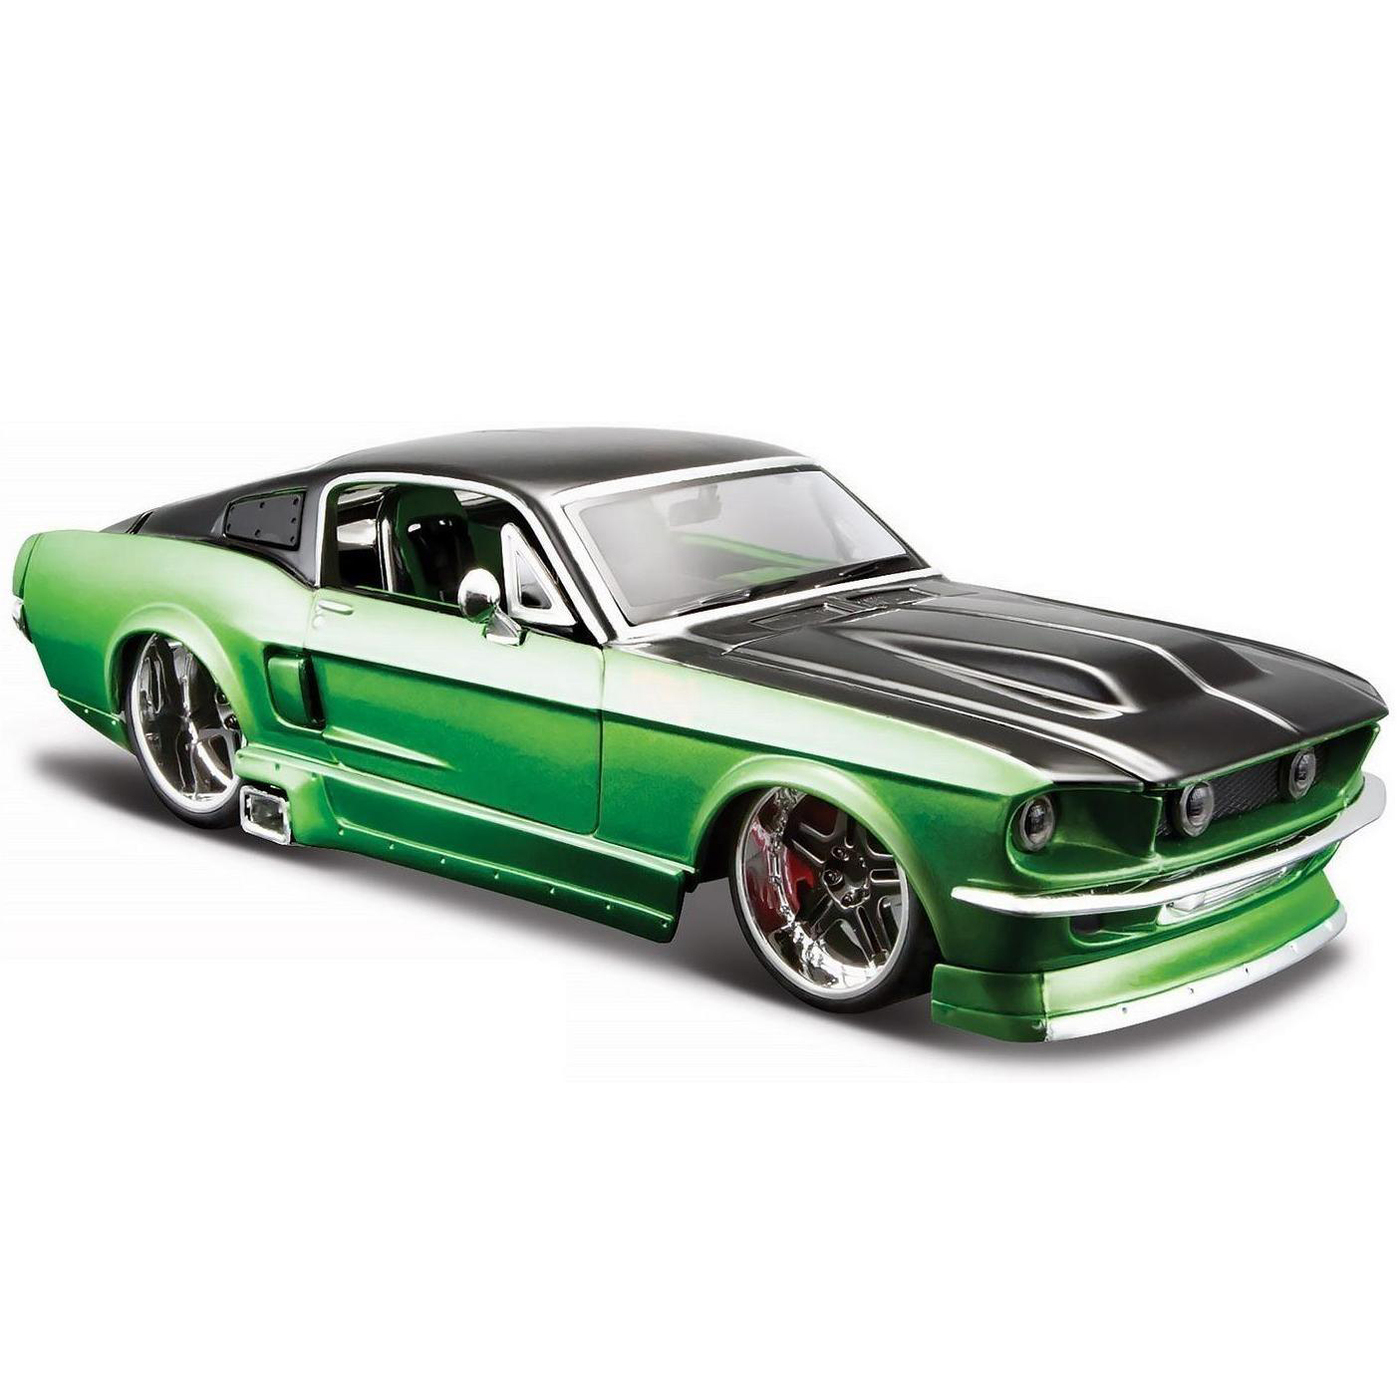 "Maisto ""Машинка сборная, зеленая - Ford Mustang GT 1967 года 1:24"""